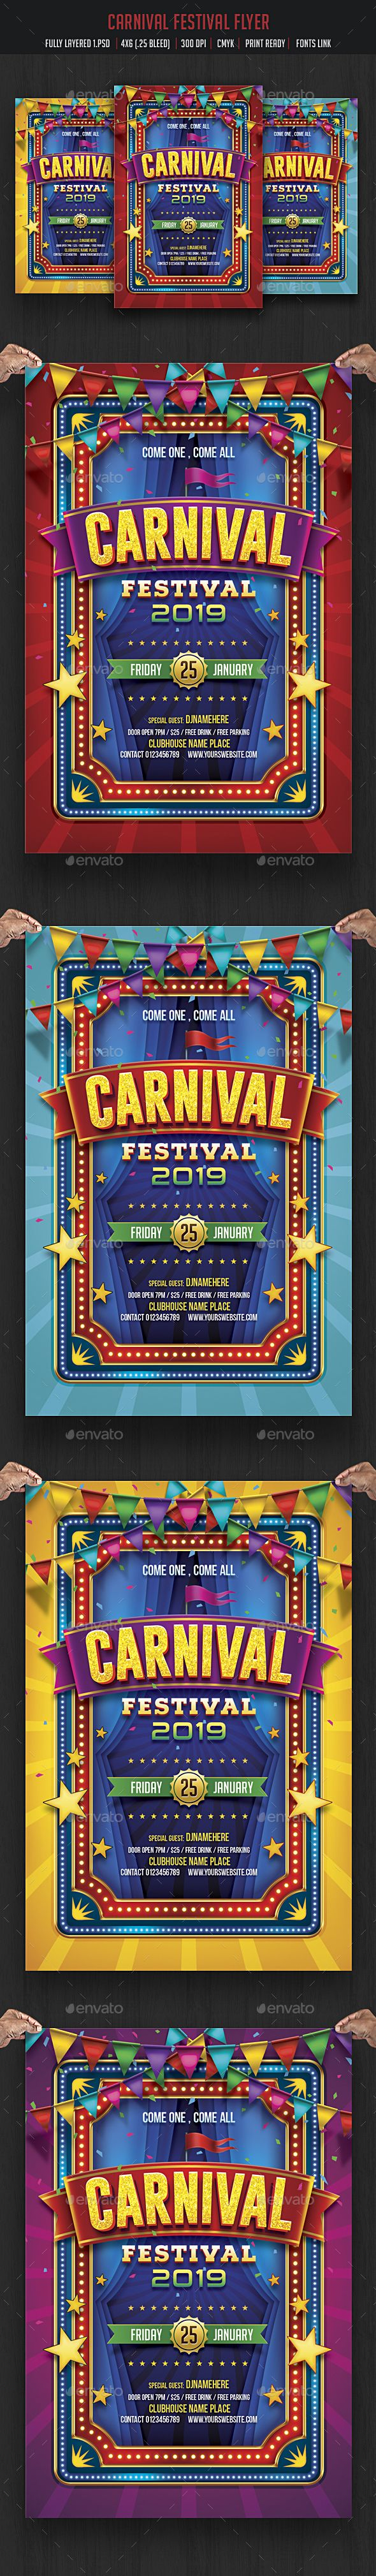 Carnival Fun Fair Flyer Pinterest Fun Fair Carnival And Flyer